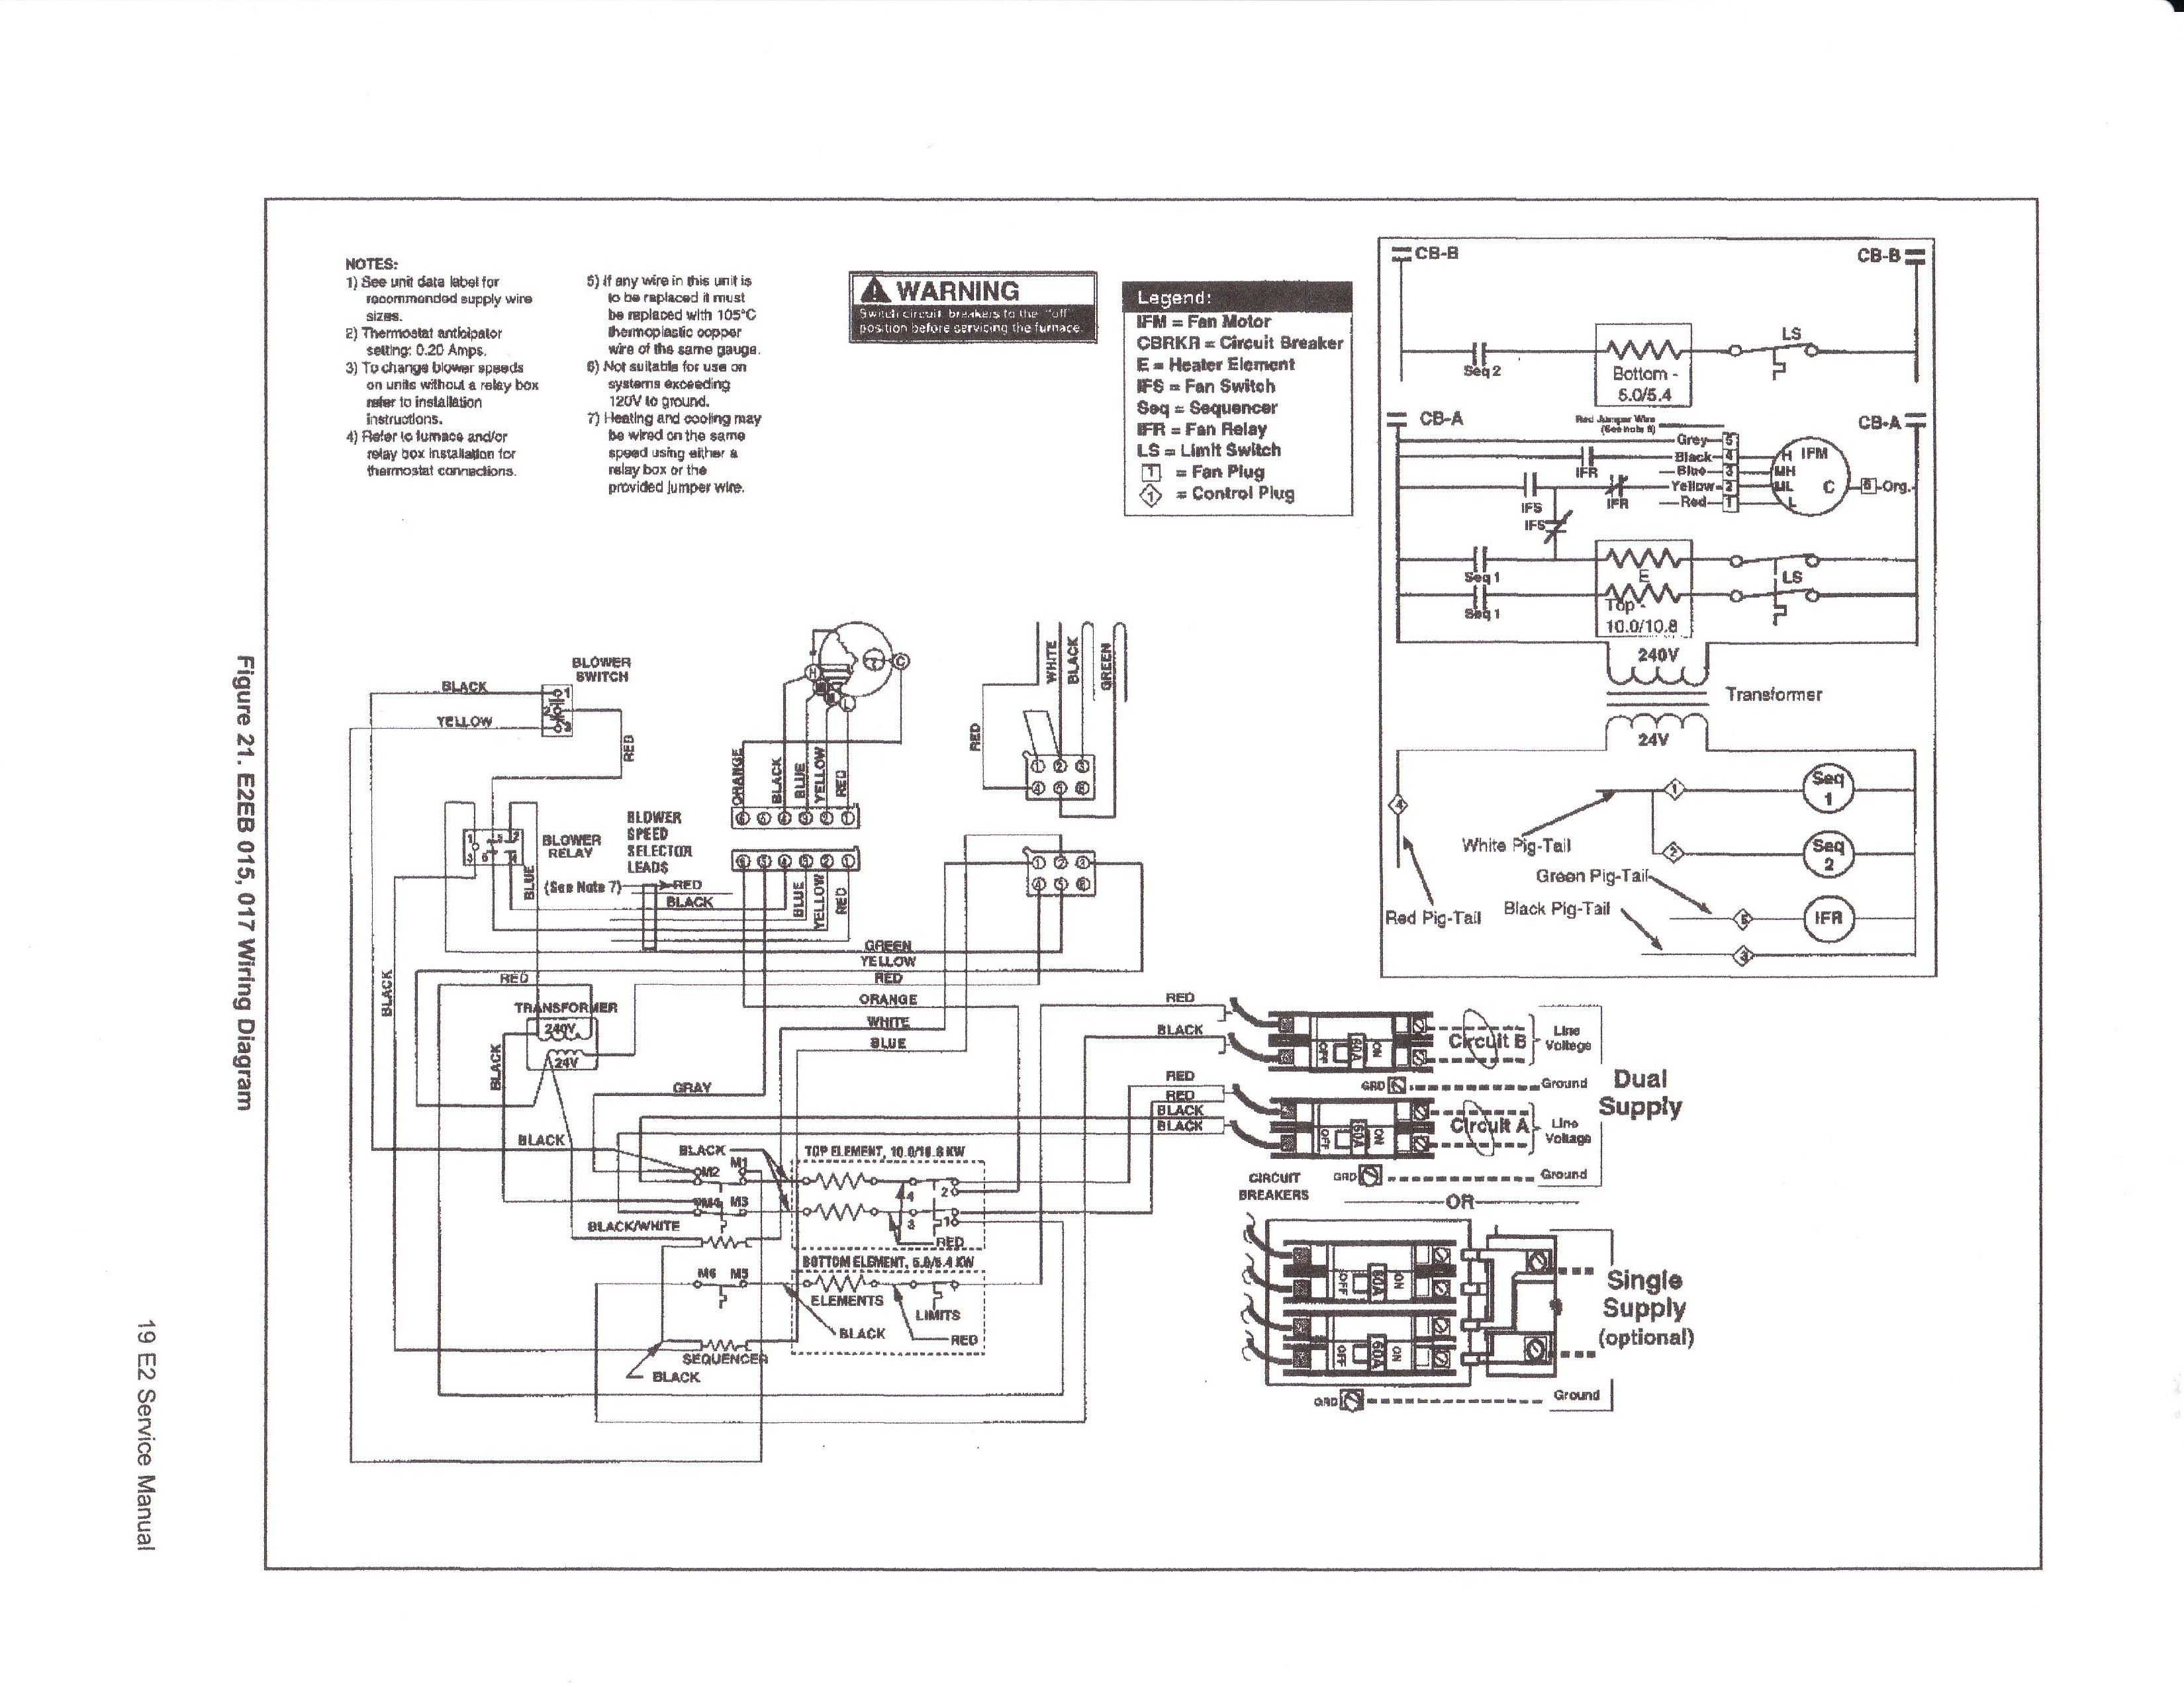 Unique Wiring Diagram for Central Ac Unit #diagramsample #